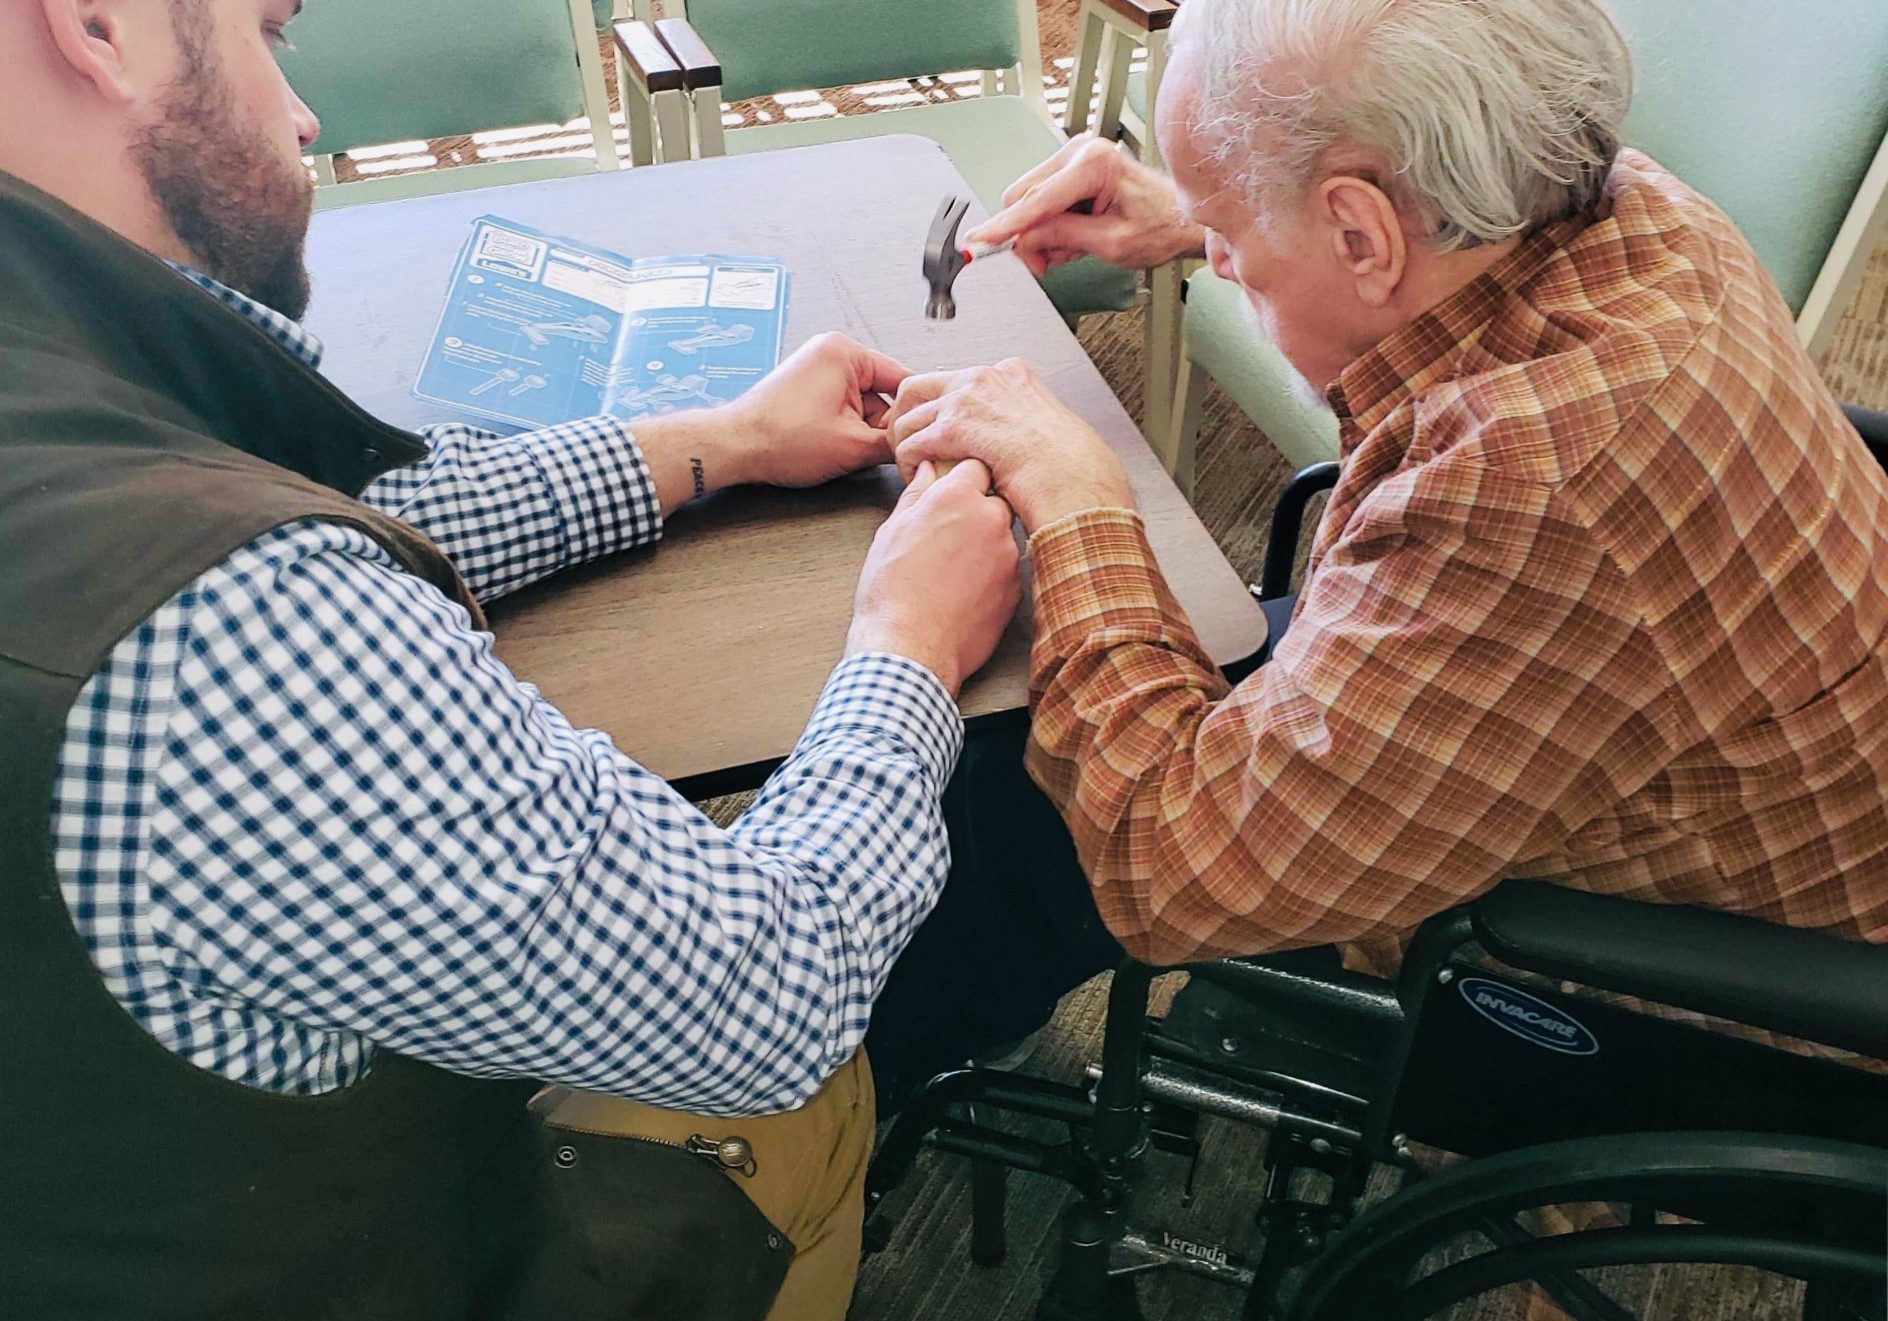 Man helping elderly man